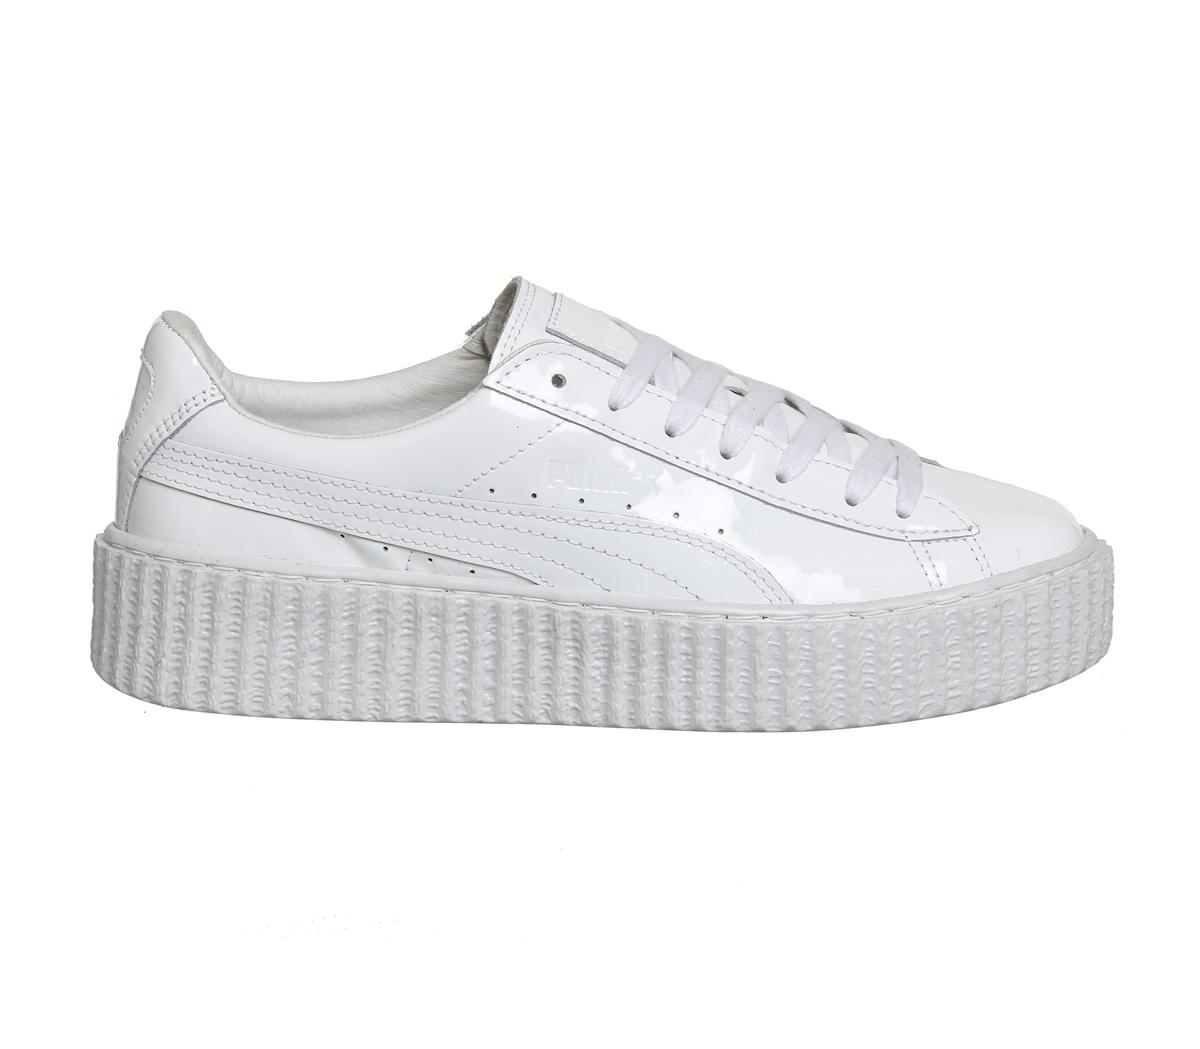 PUMA Suede Basket Creepers in White - Lyst